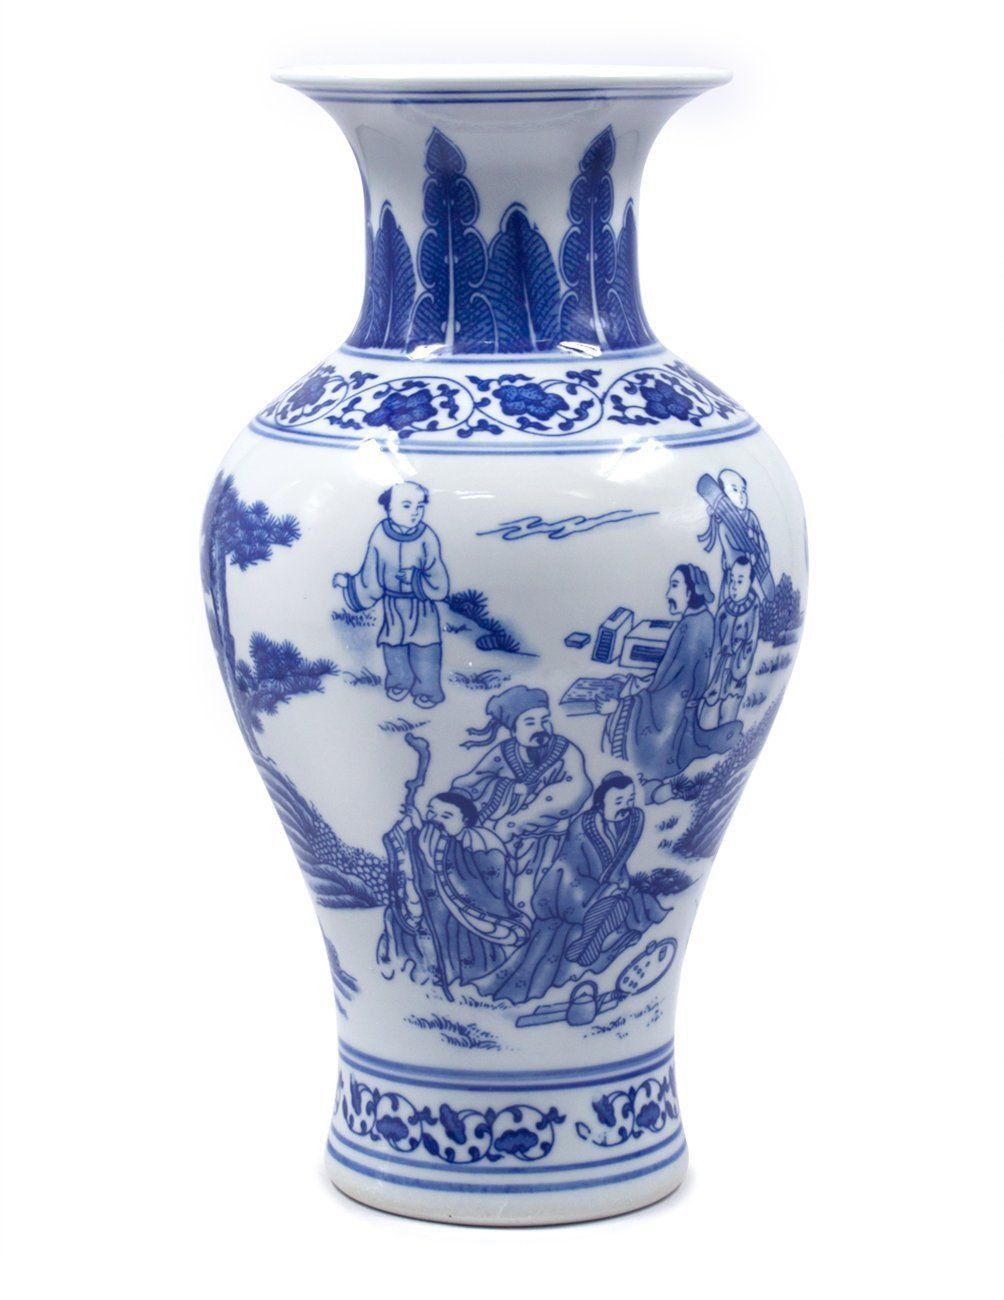 24 inch square vase of dahlia friends enjoying nature blue and white porcelain flower vase in dahlia friends enjoying nature blue and white porcelain flower vase 13 inches fish tail vase to view further for this item visit the image link